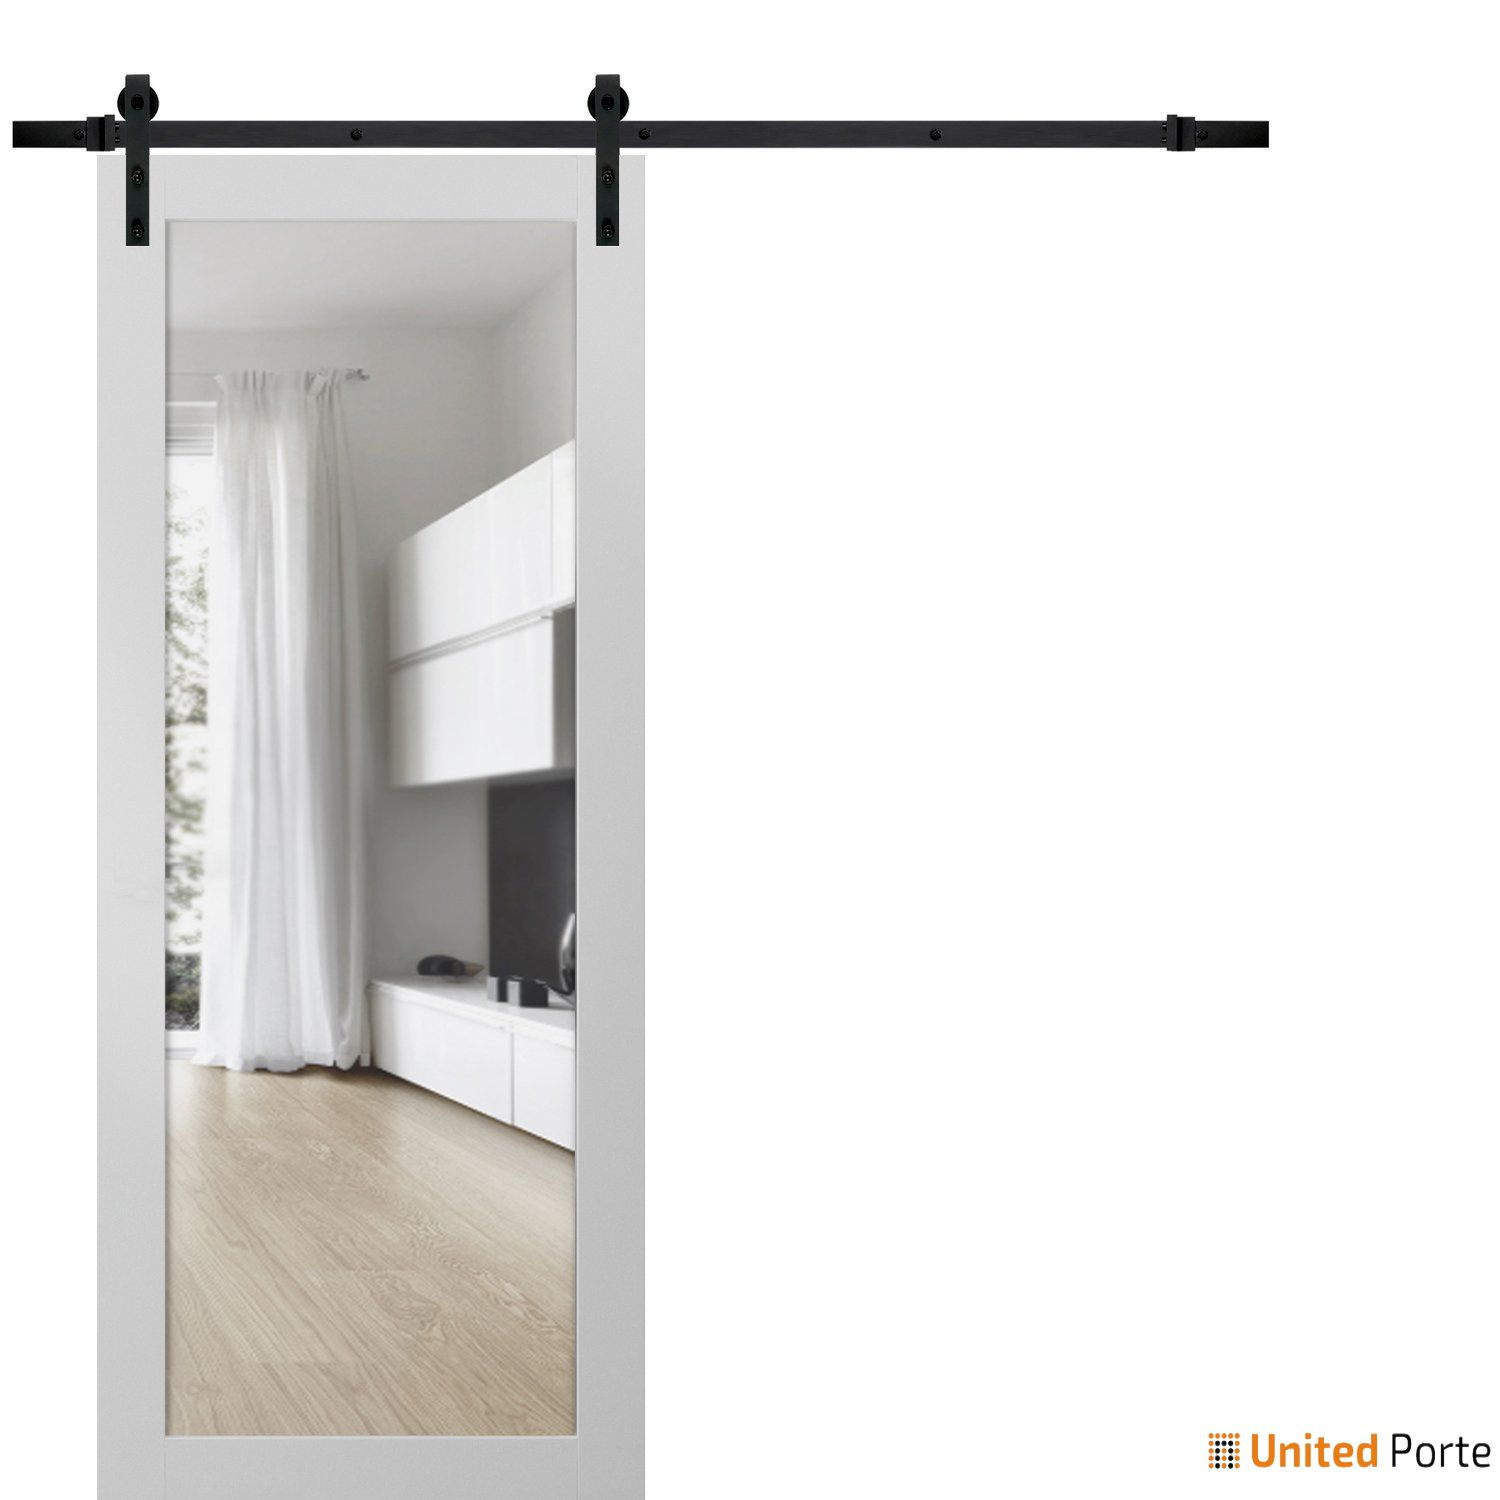 Lucia 2166 White Silk Sturdy Barn Door Clear Glass with Black Hardware | Solid Panel Interior Barn Doors